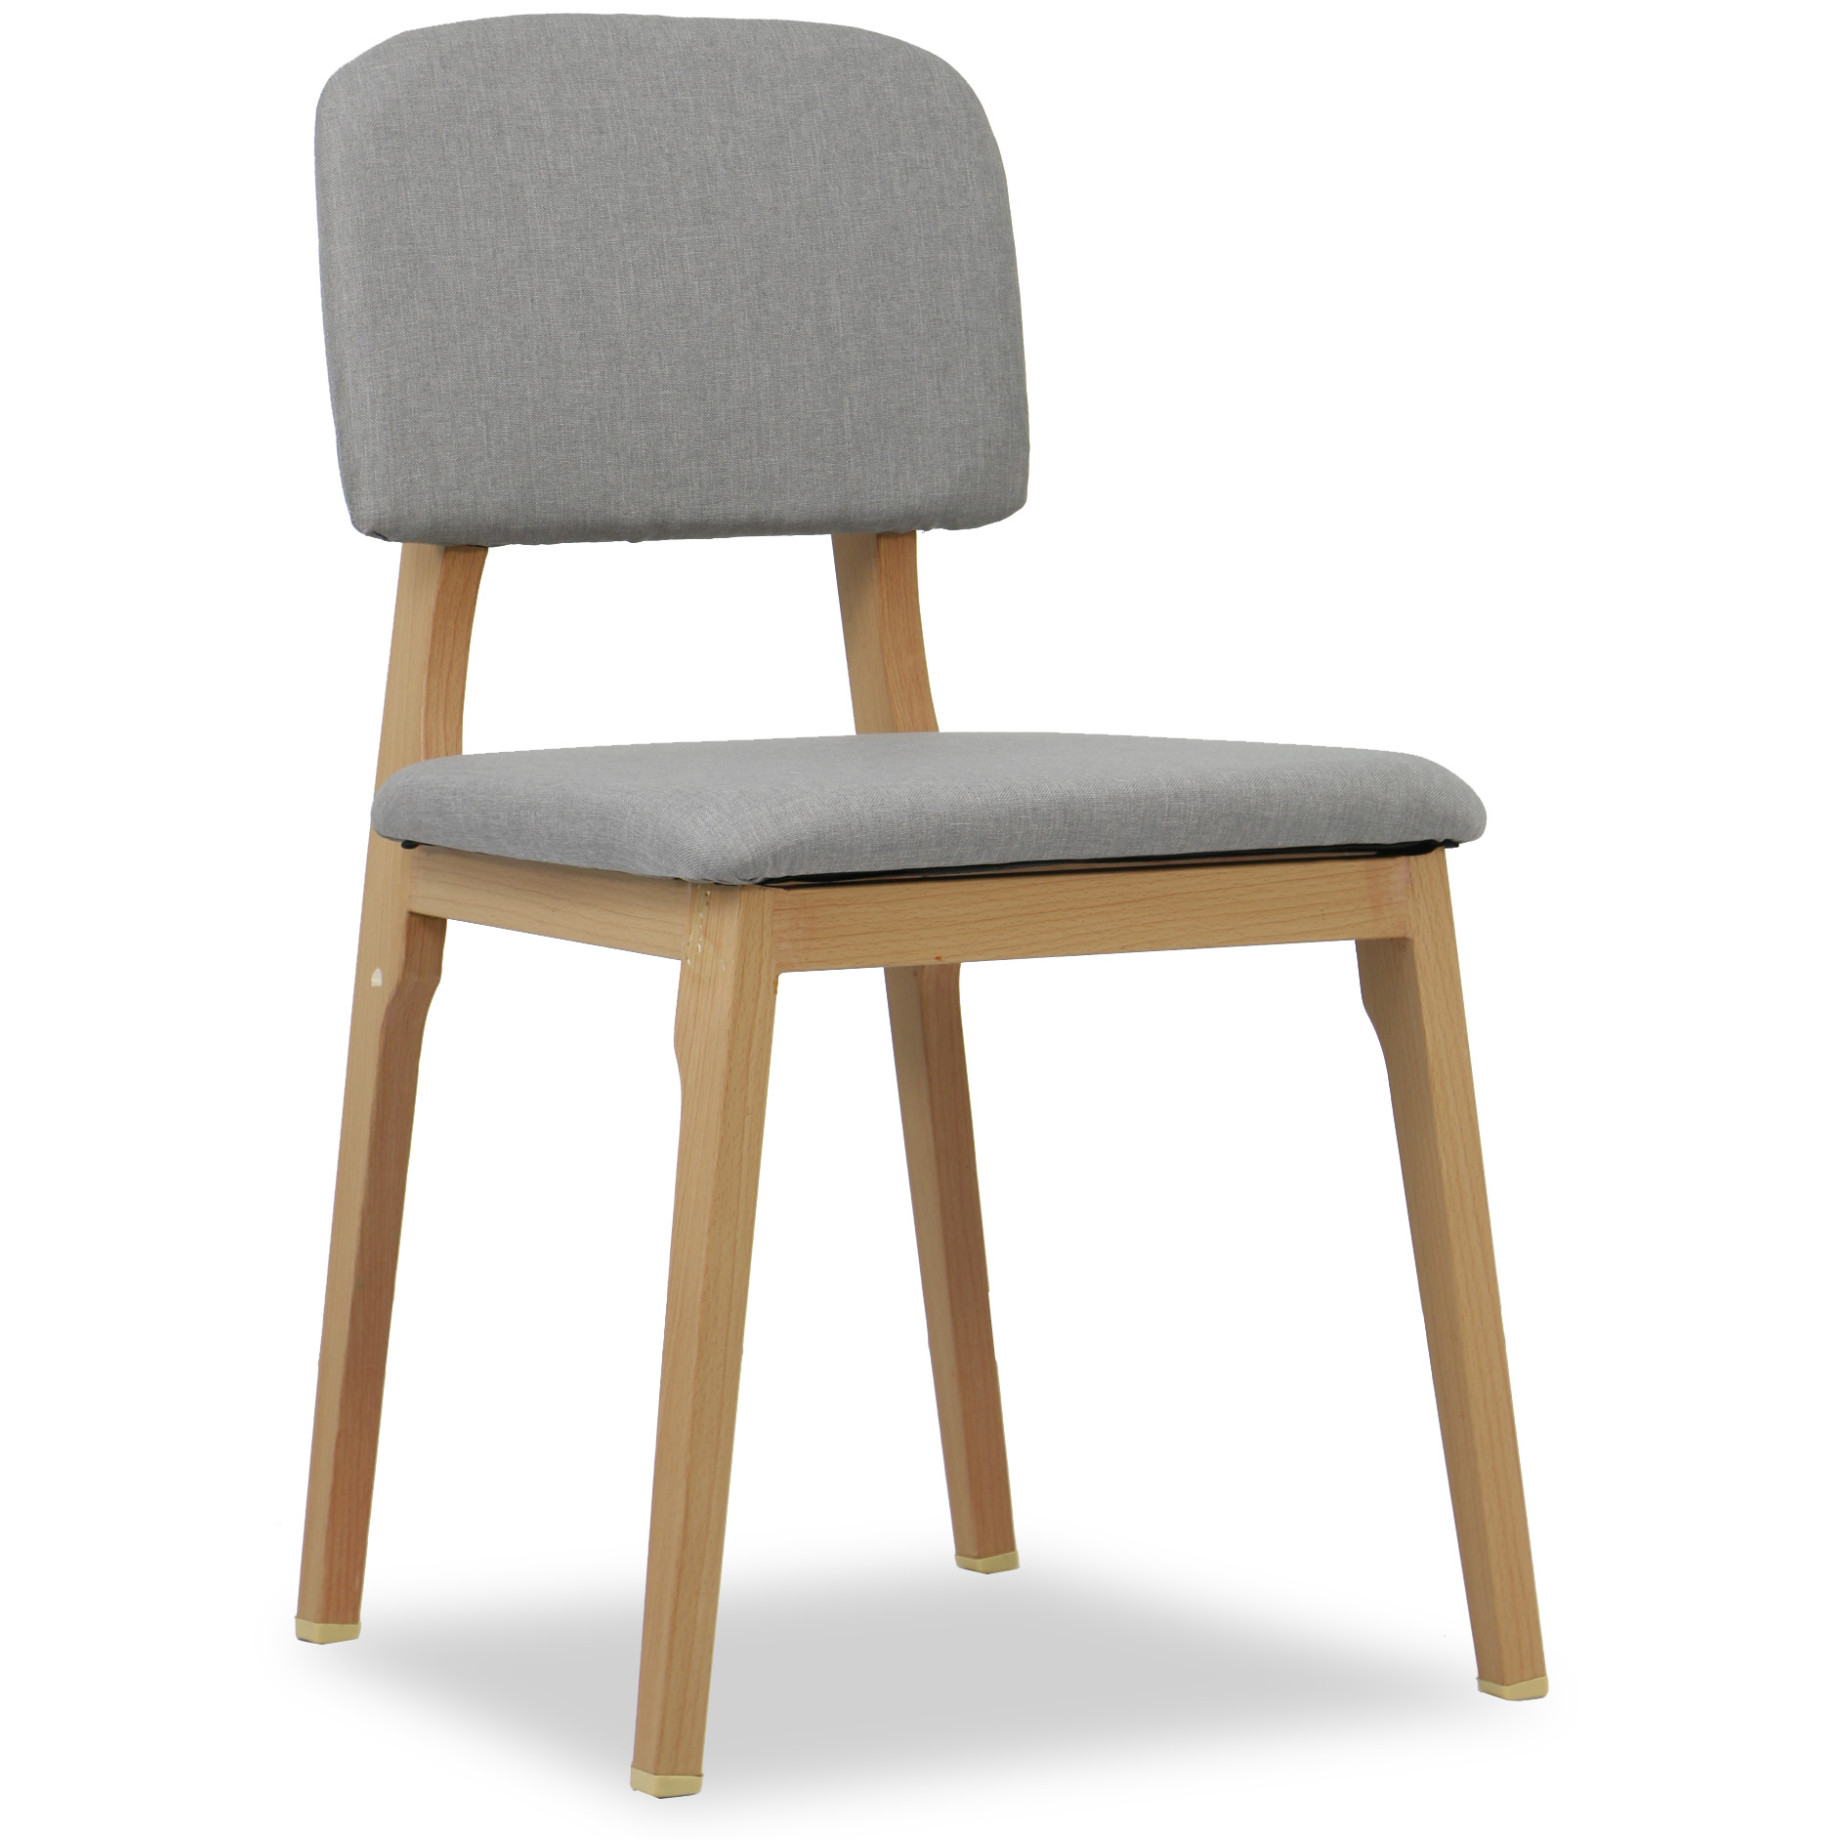 AS-IS Clearance: Zeslier Dining Chair (Light Grey) RR40025